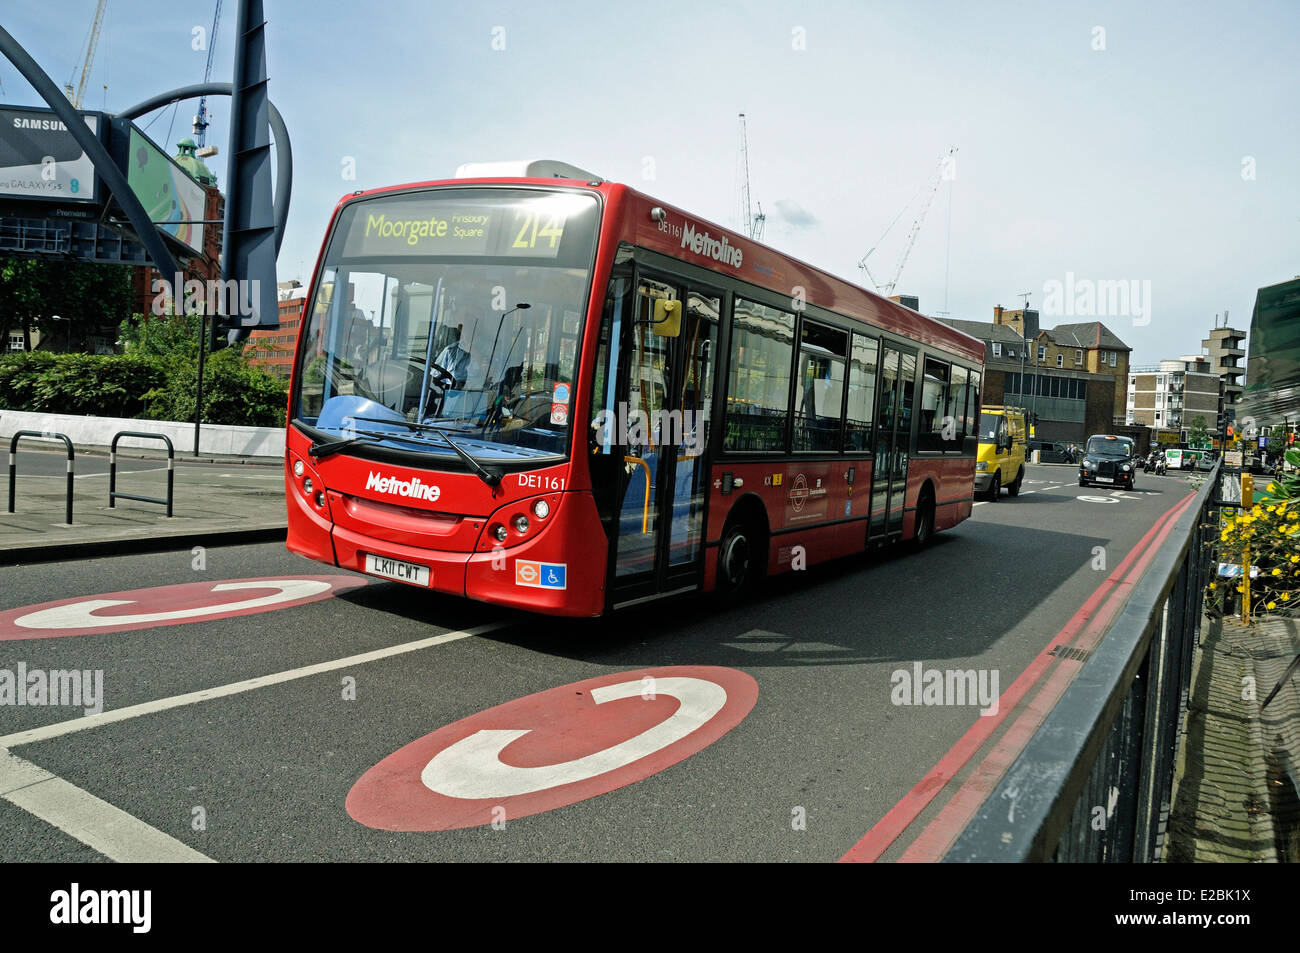 Low decker bus entering congestion charge zone, Old Street Roundabout, London Borough of Islington, Engand UK - Stock Image